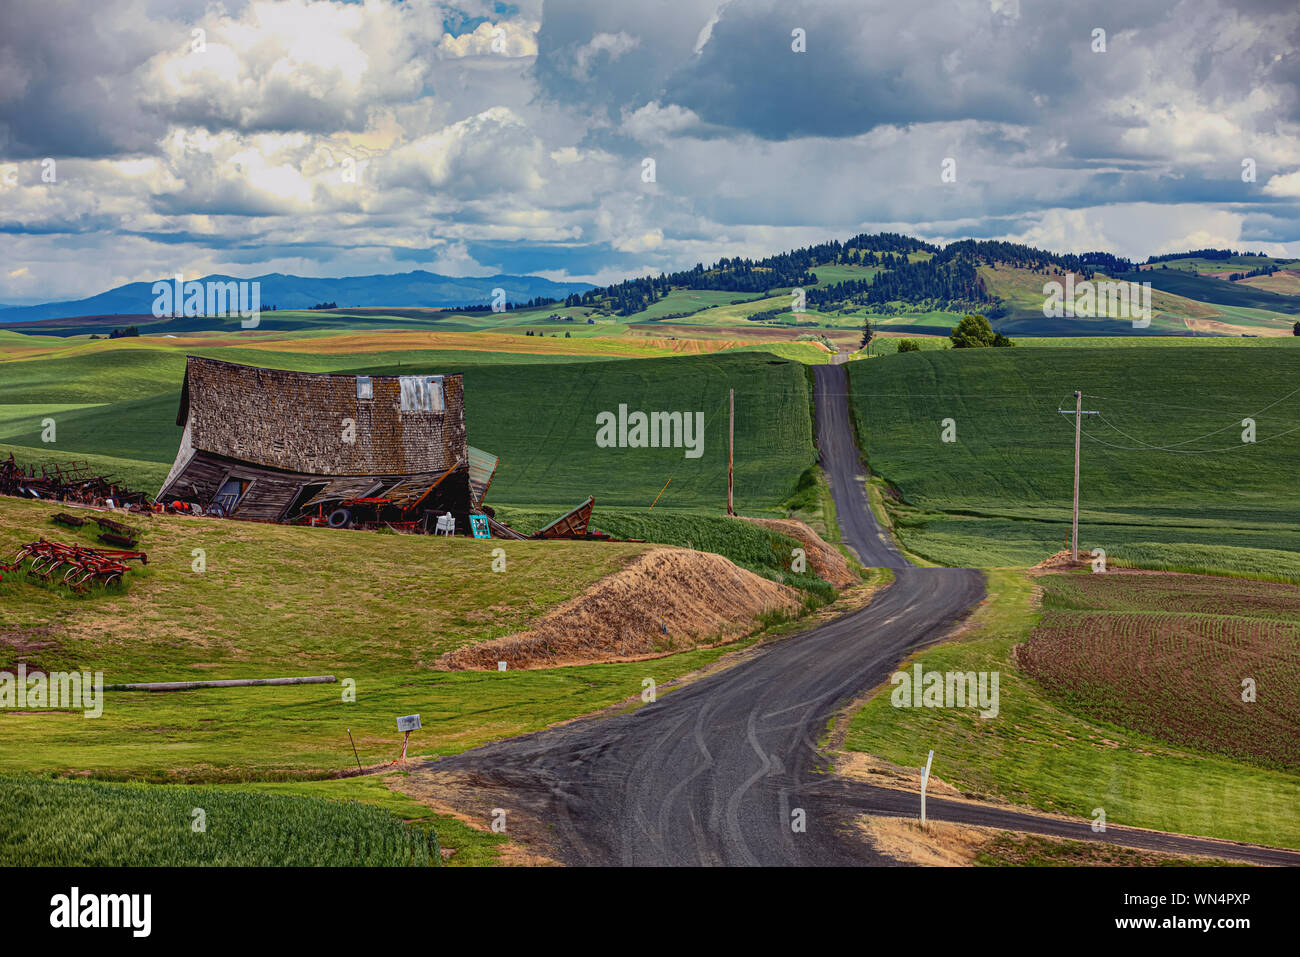 The Skeen school house in the Palouse, Washington Stock Photo